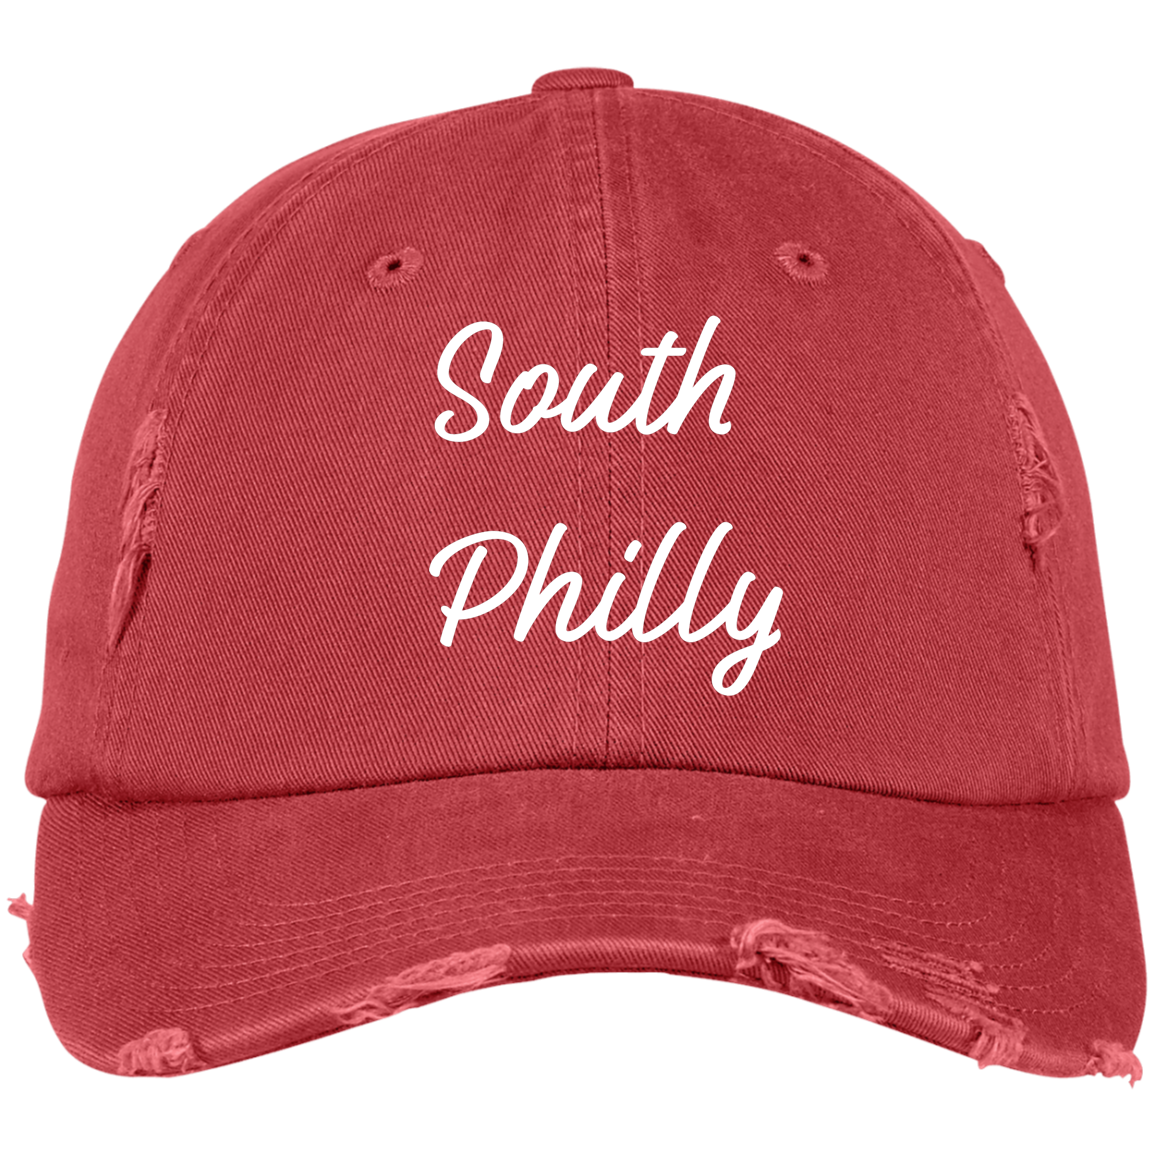 f0a78395ccc Generation T Brand Embroidered South Philly Distressed Dad Cap